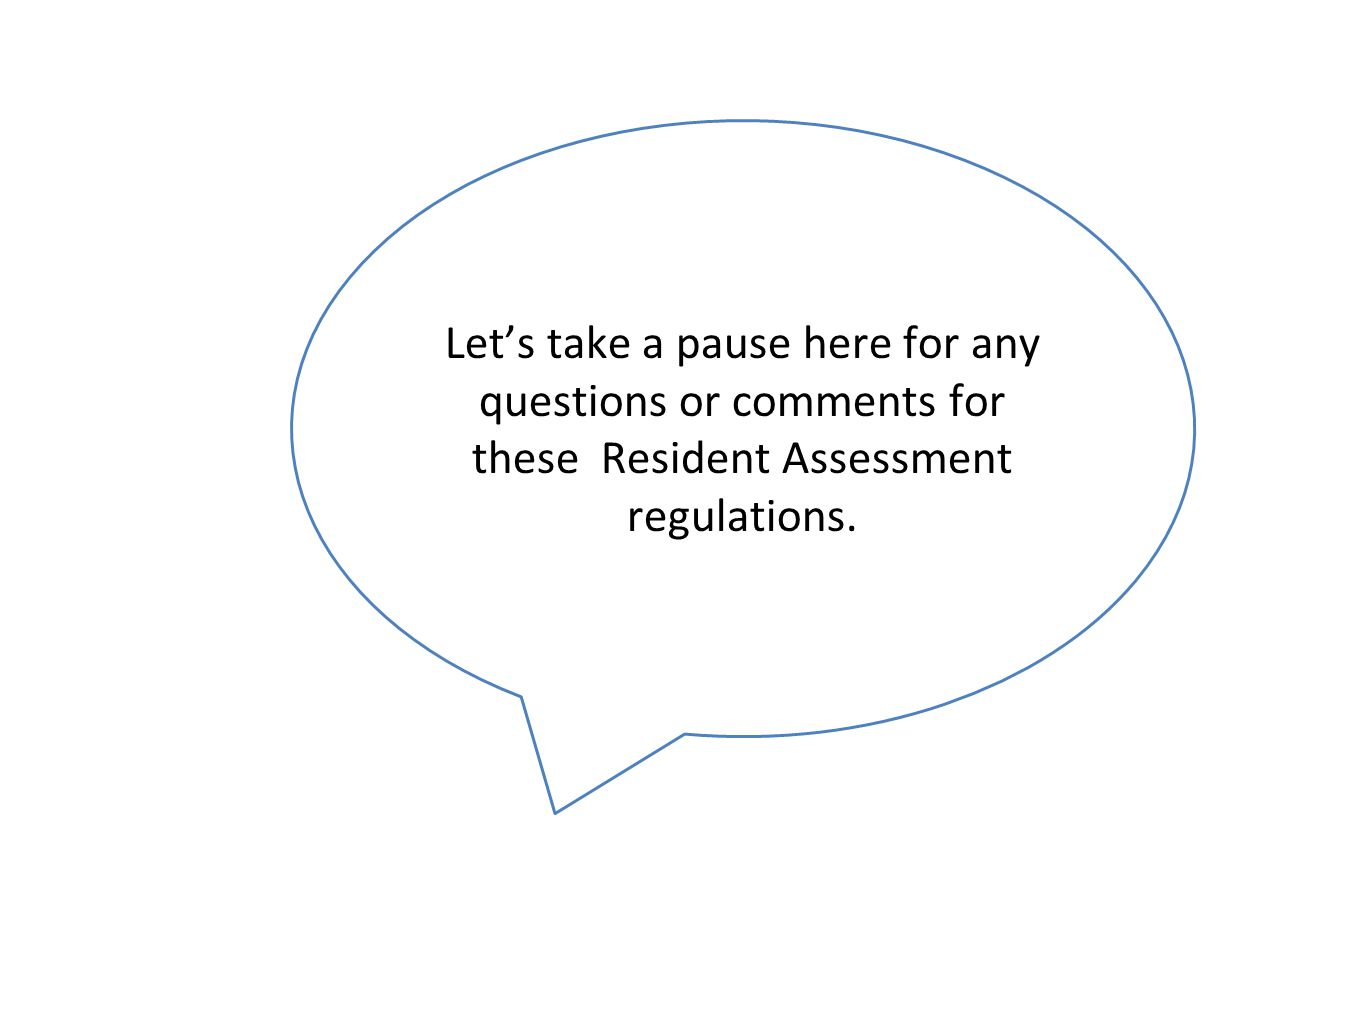 Let's take a pause here for any questions or comments for these Resident Assessment regulations.